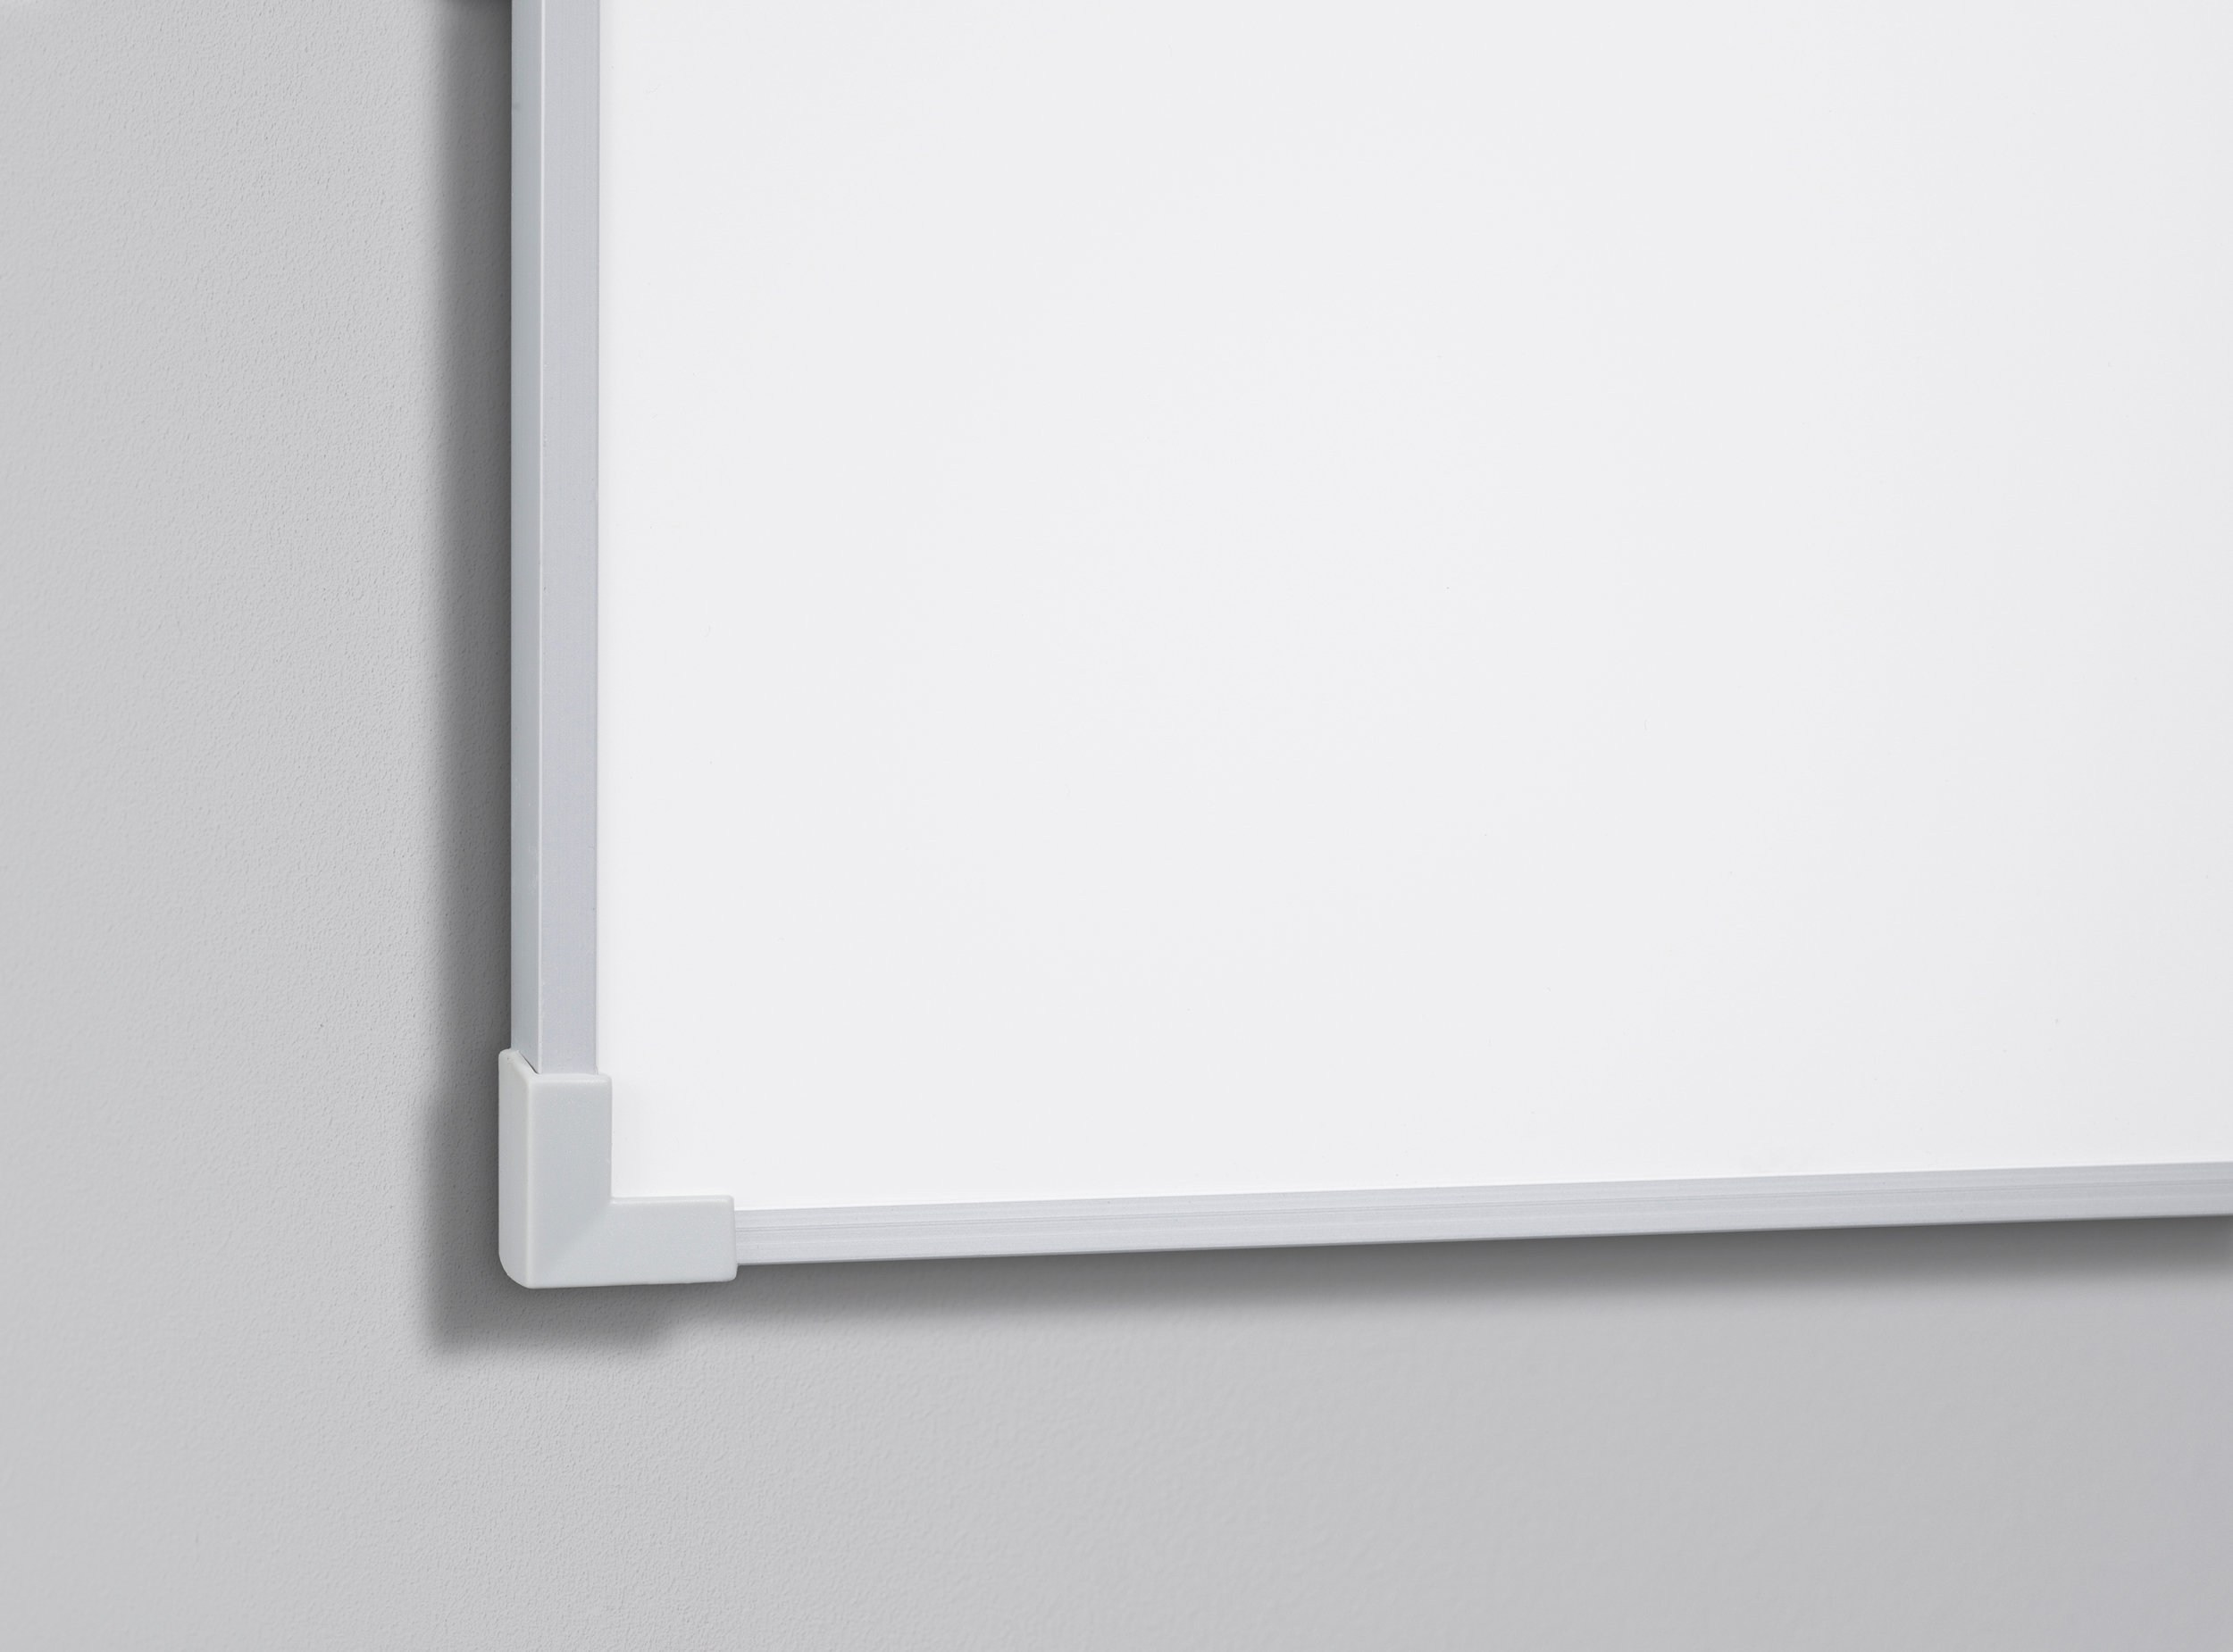 Merawat Whiteboard - Archiproducts.com